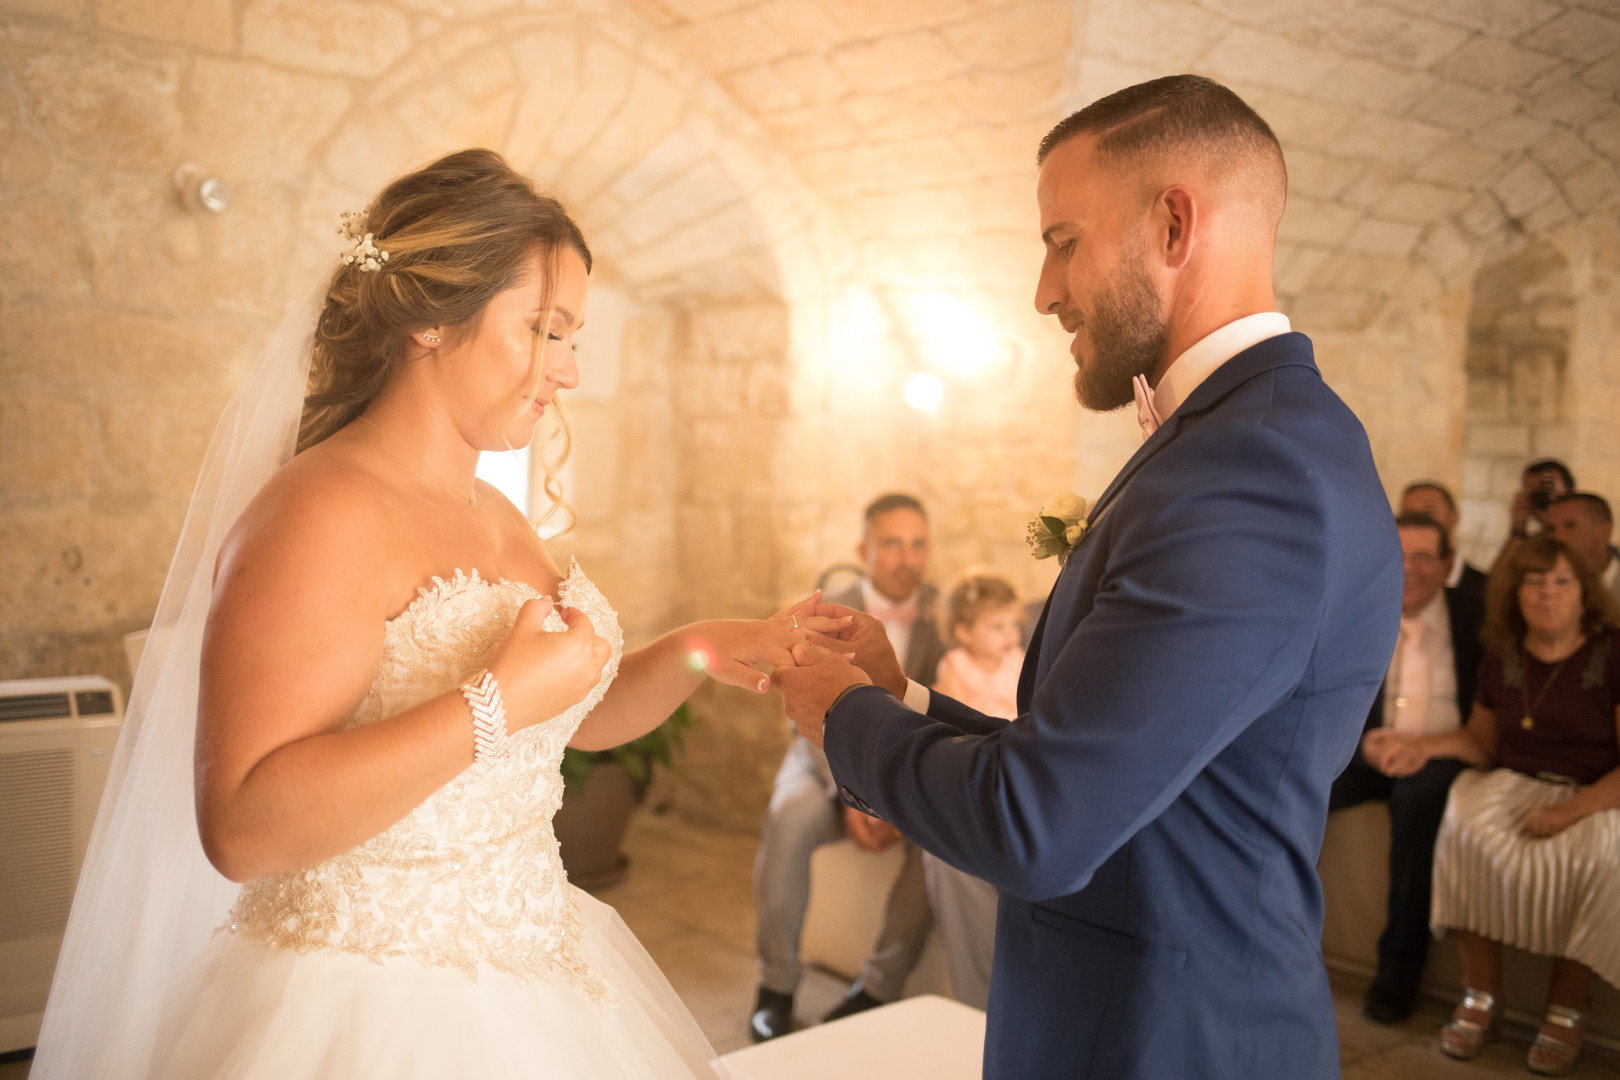 love mariage  wedding  rings bagues mairie photography photographie